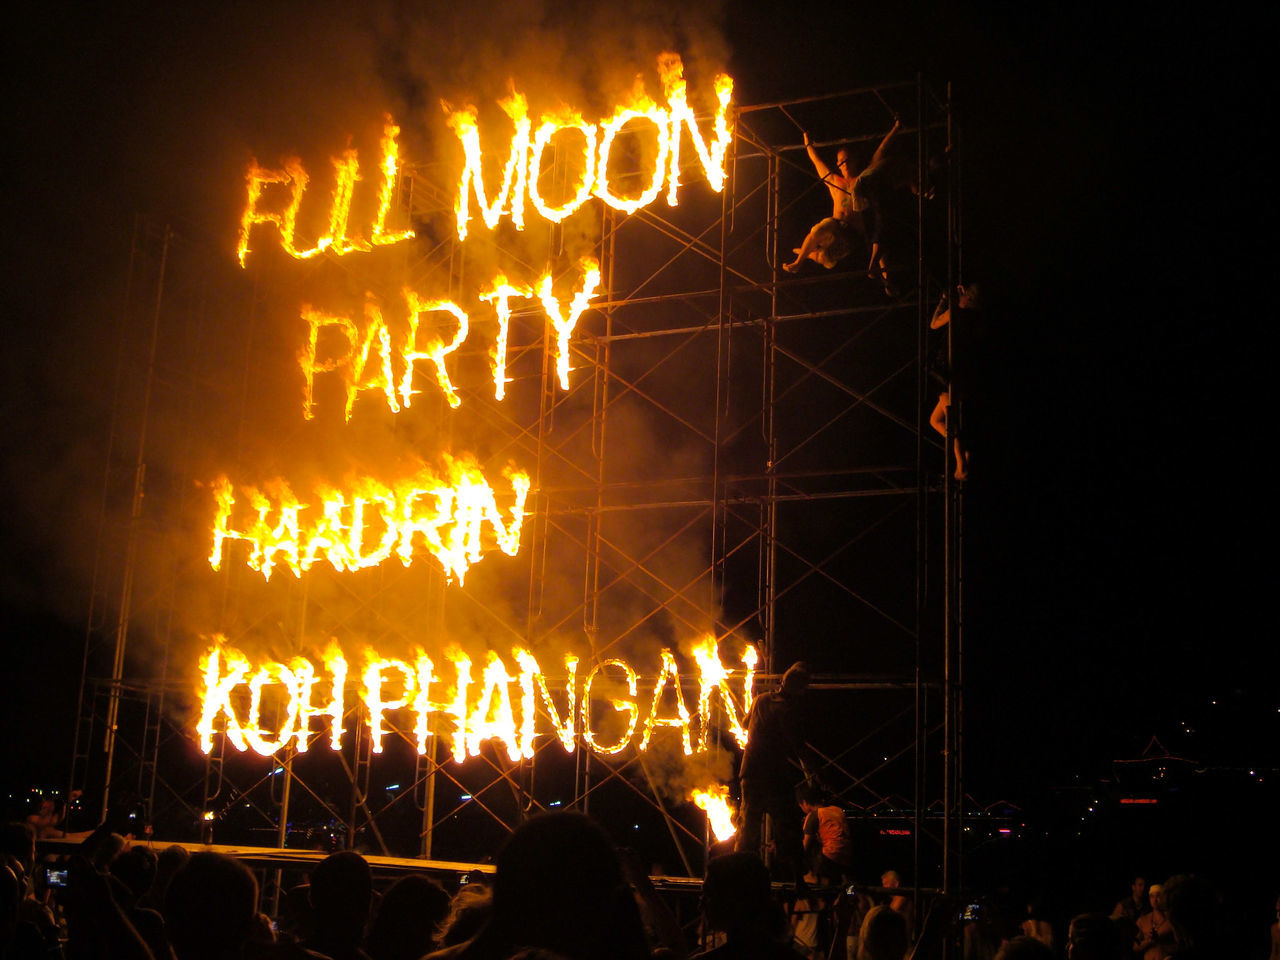 Full Moon 🌕 Fullmoon Full Moon Party Full Moon Party In Koh Phangan Koh Phangan Illuminated Crowd Night Text Outdoors People Beach Beach Party Travel Travel Destinations Thailand EyeEmNewHere EyeEmNewHere EyeEmNewHere